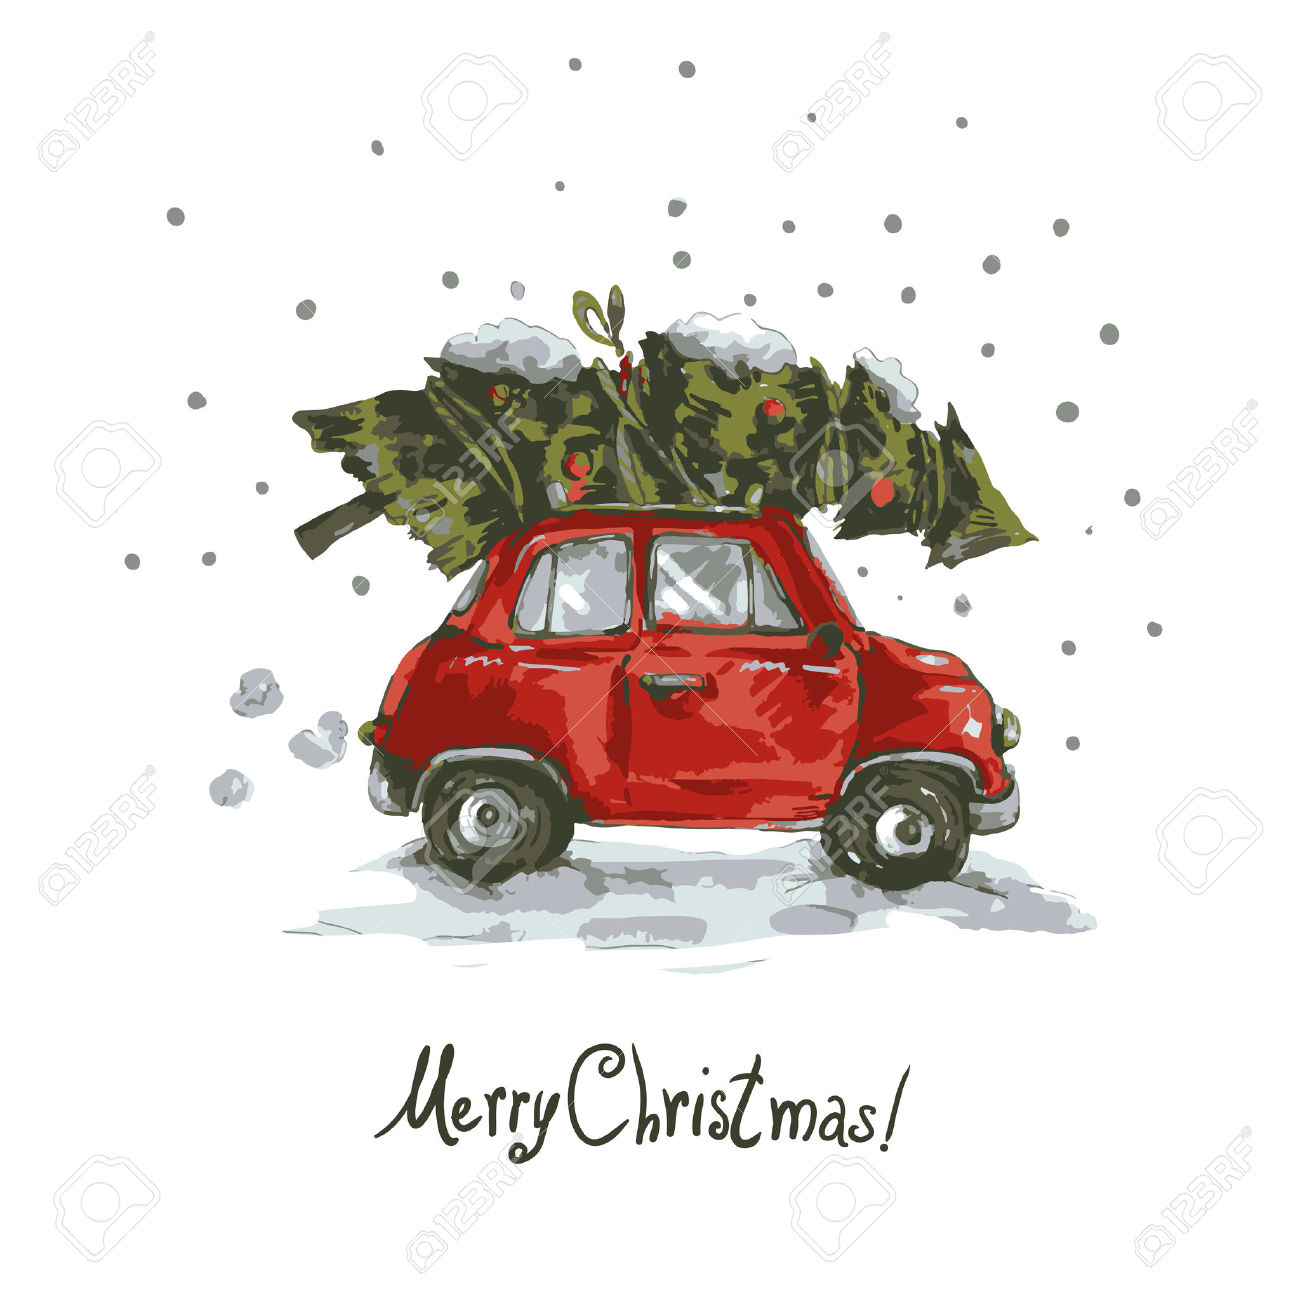 Winter Greeting Card With Red Retro Car, Christmas Tree, Vintage.